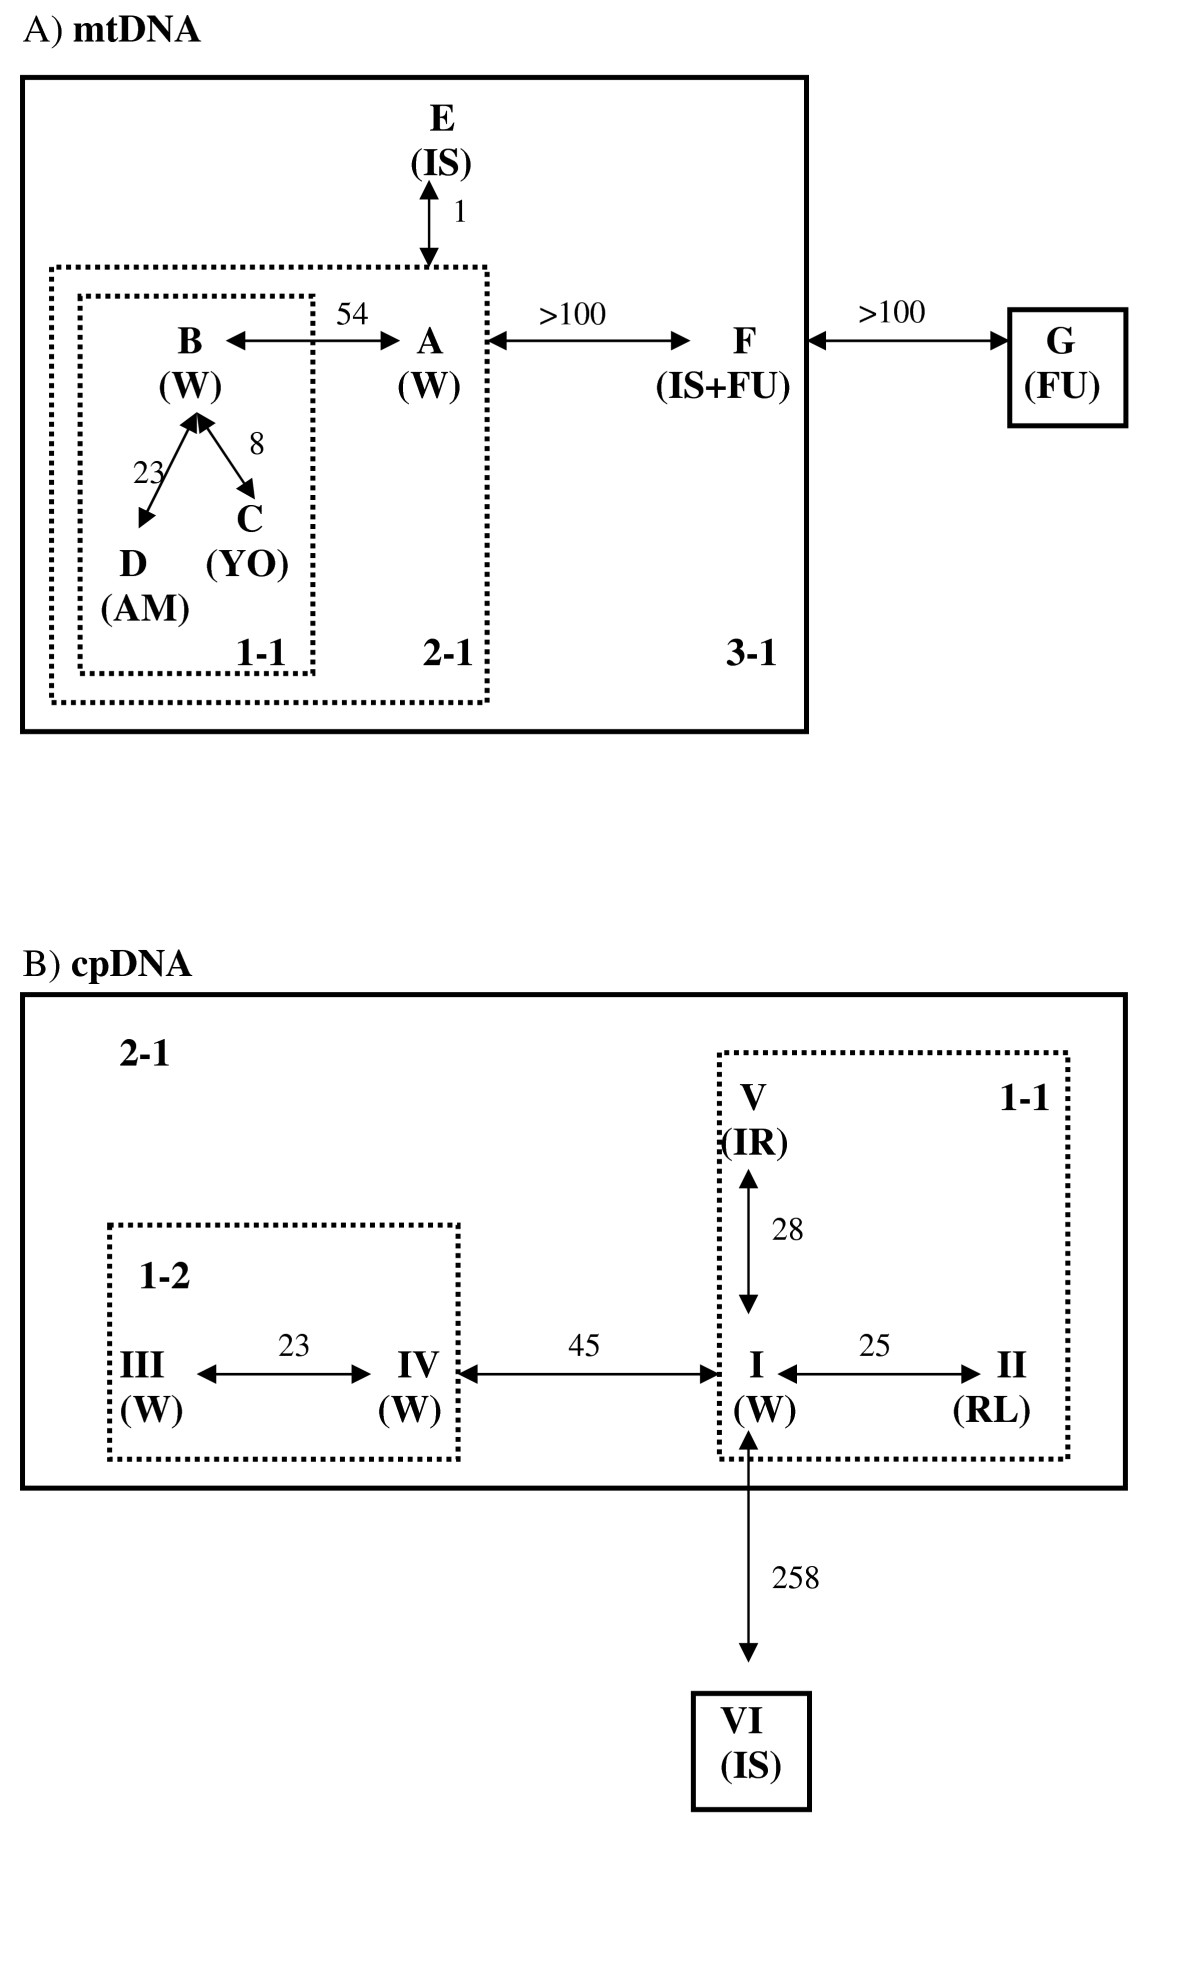 https://static-content.springer.com/image/art%3A10.1186%2F1471-2148-9-161/MediaObjects/12862_2009_Article_1075_Fig3_HTML.jpg